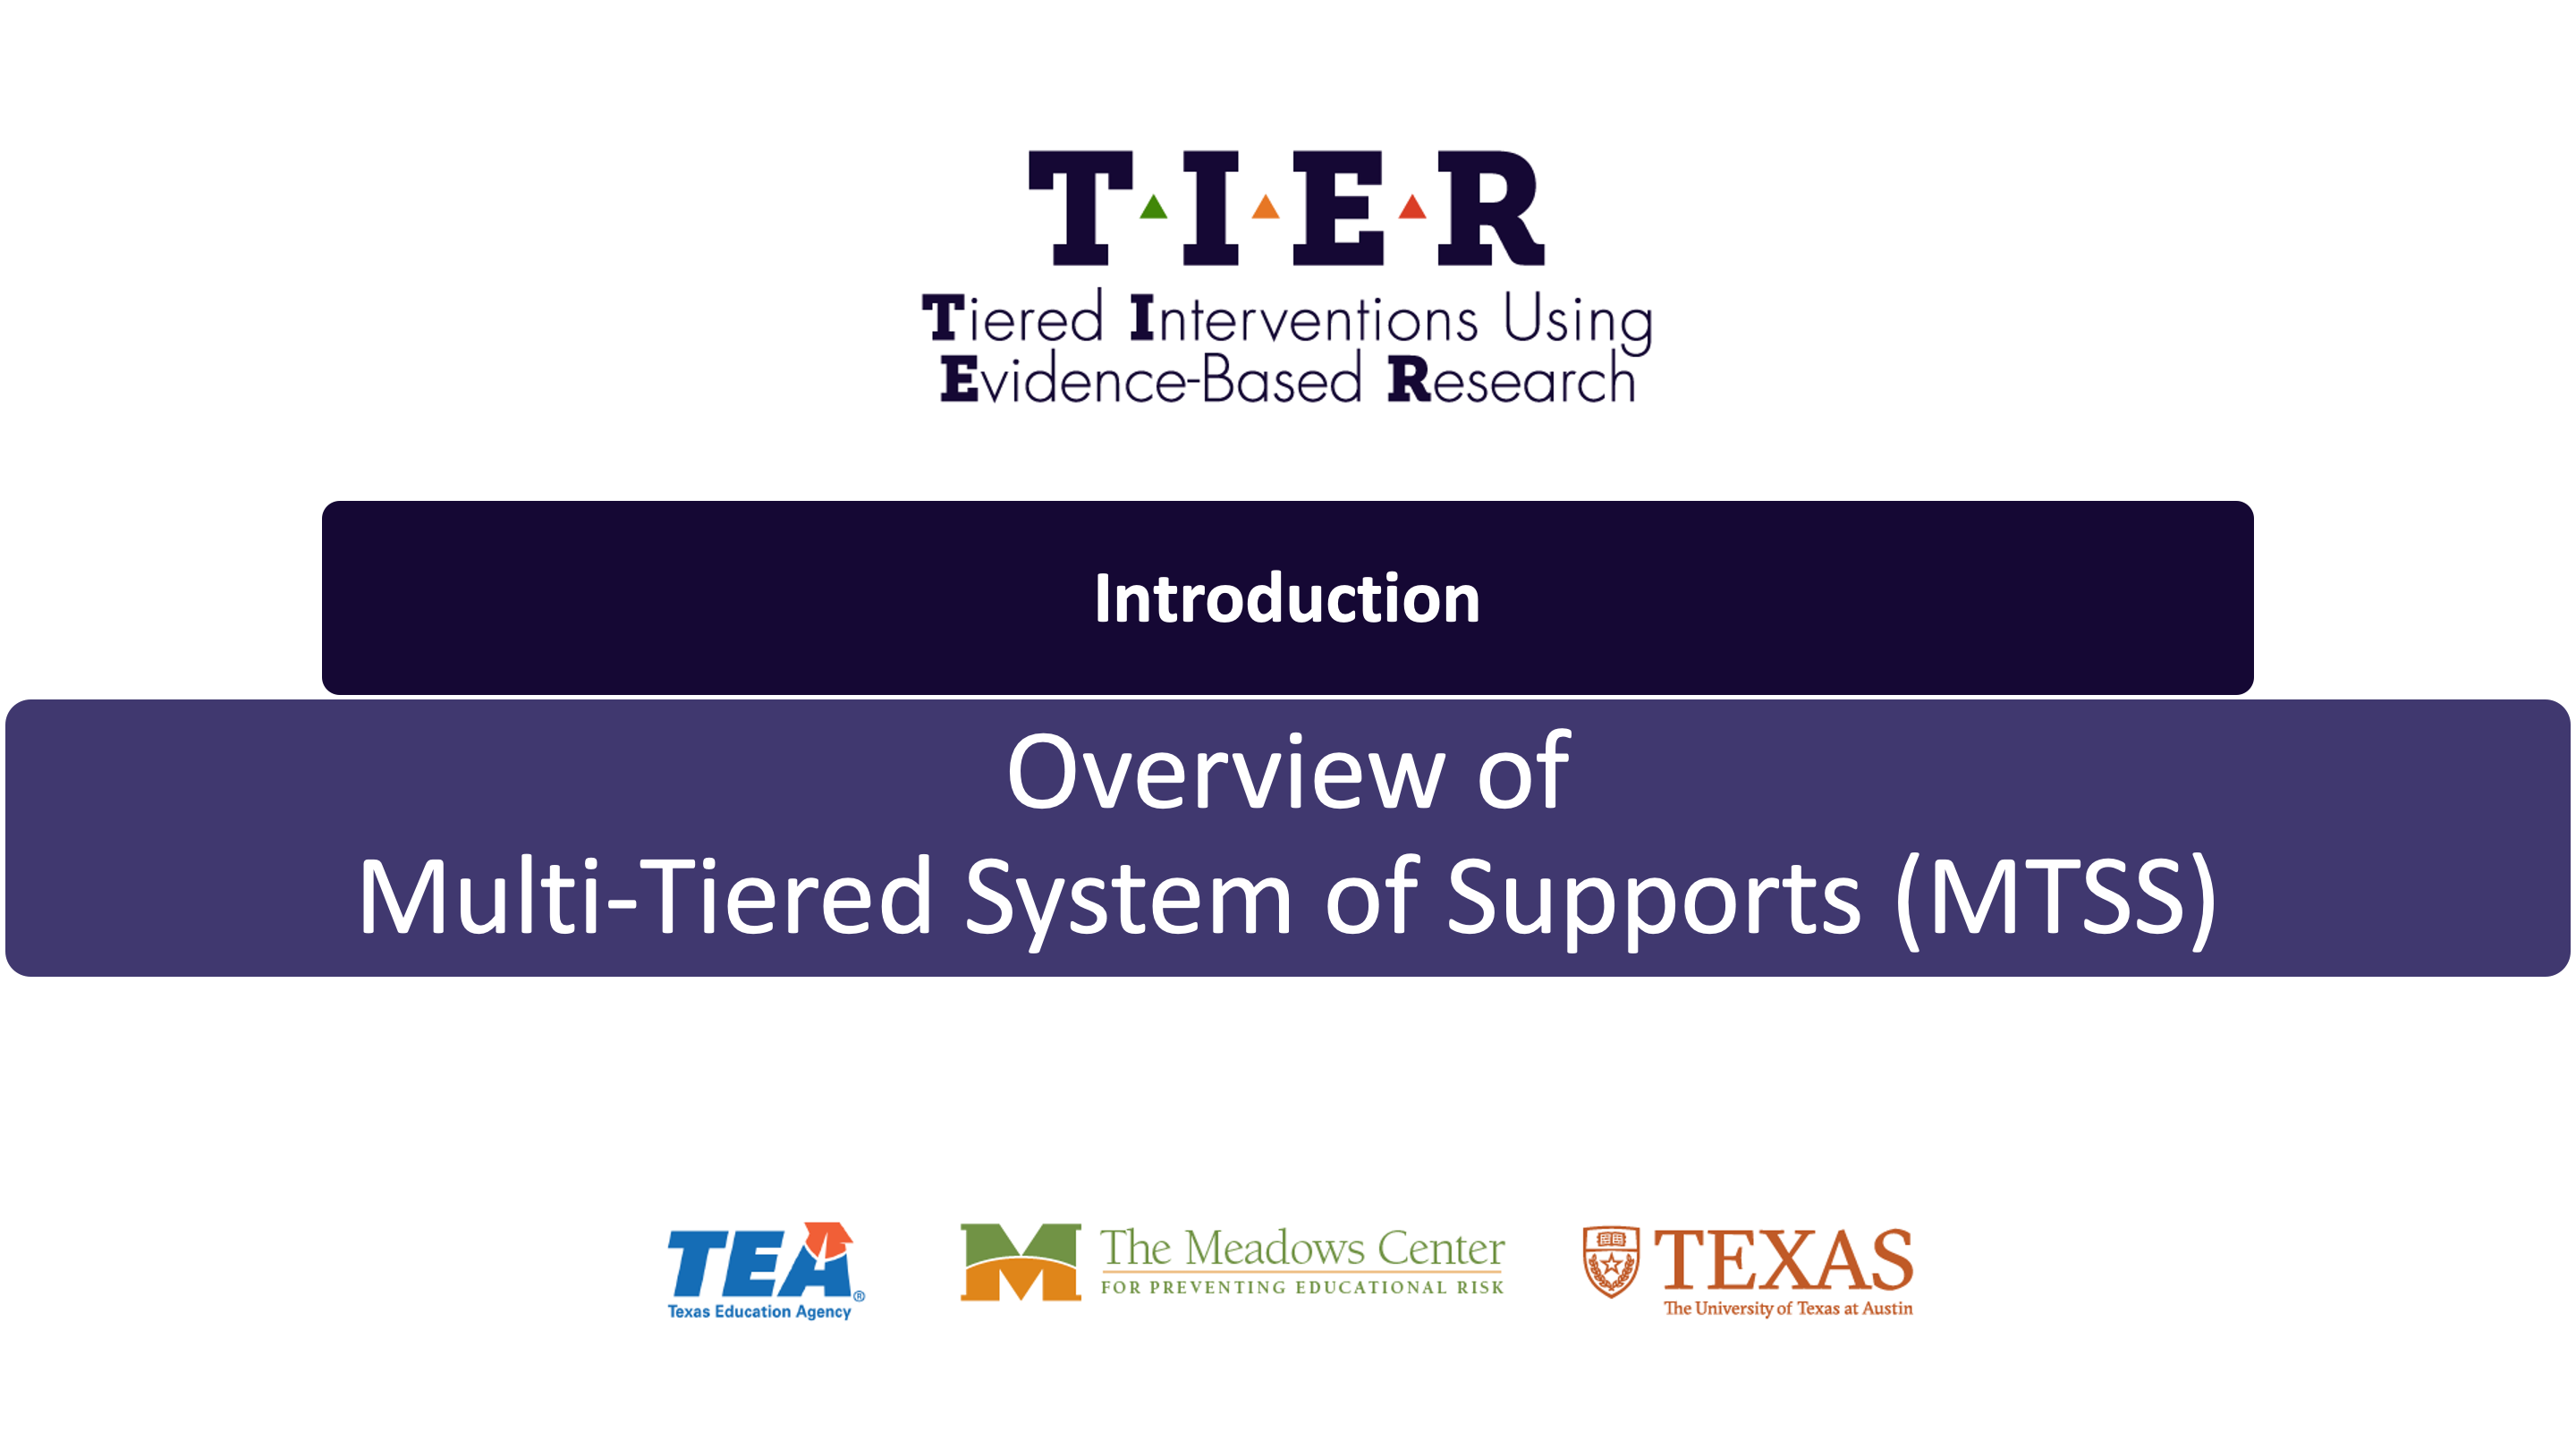 Overview of MTSS